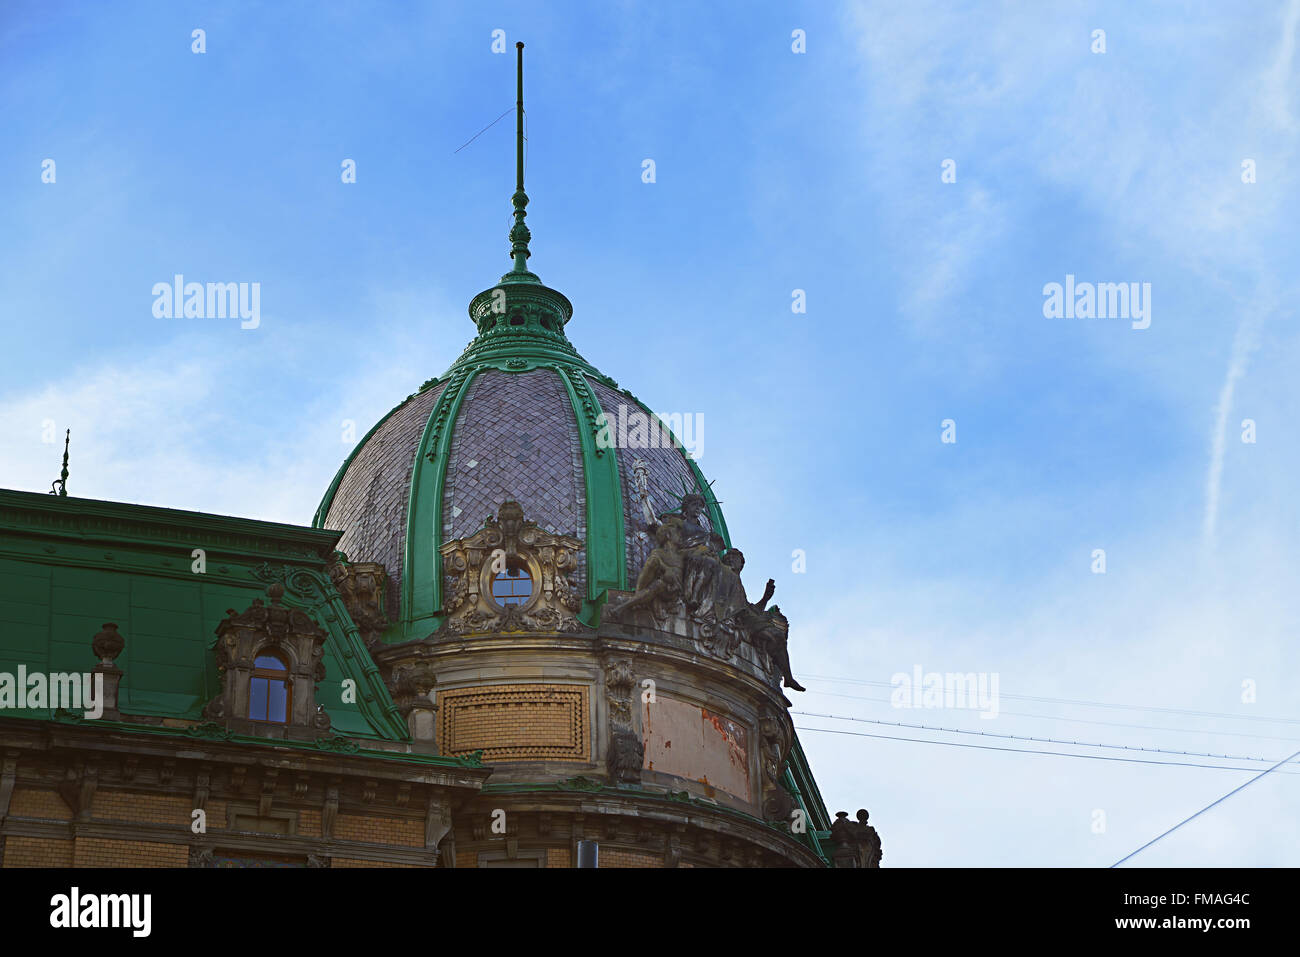 Lviv, Ukraine - January 30, 2016: View of The Sitting Statue of Liberty on the roof of the Museum of Ethnography - Stock Image